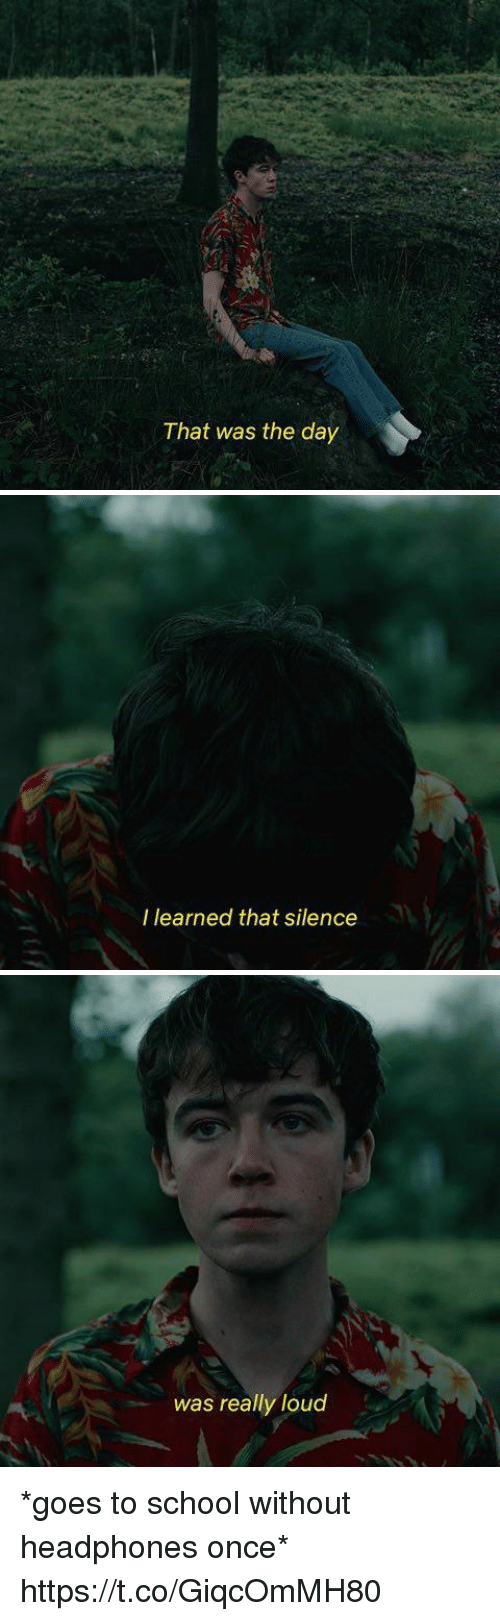 Funny, School, and Headphones: That was the day   I learned that silence   was really loud *goes to school without headphones once* https://t.co/GiqcOmMH80